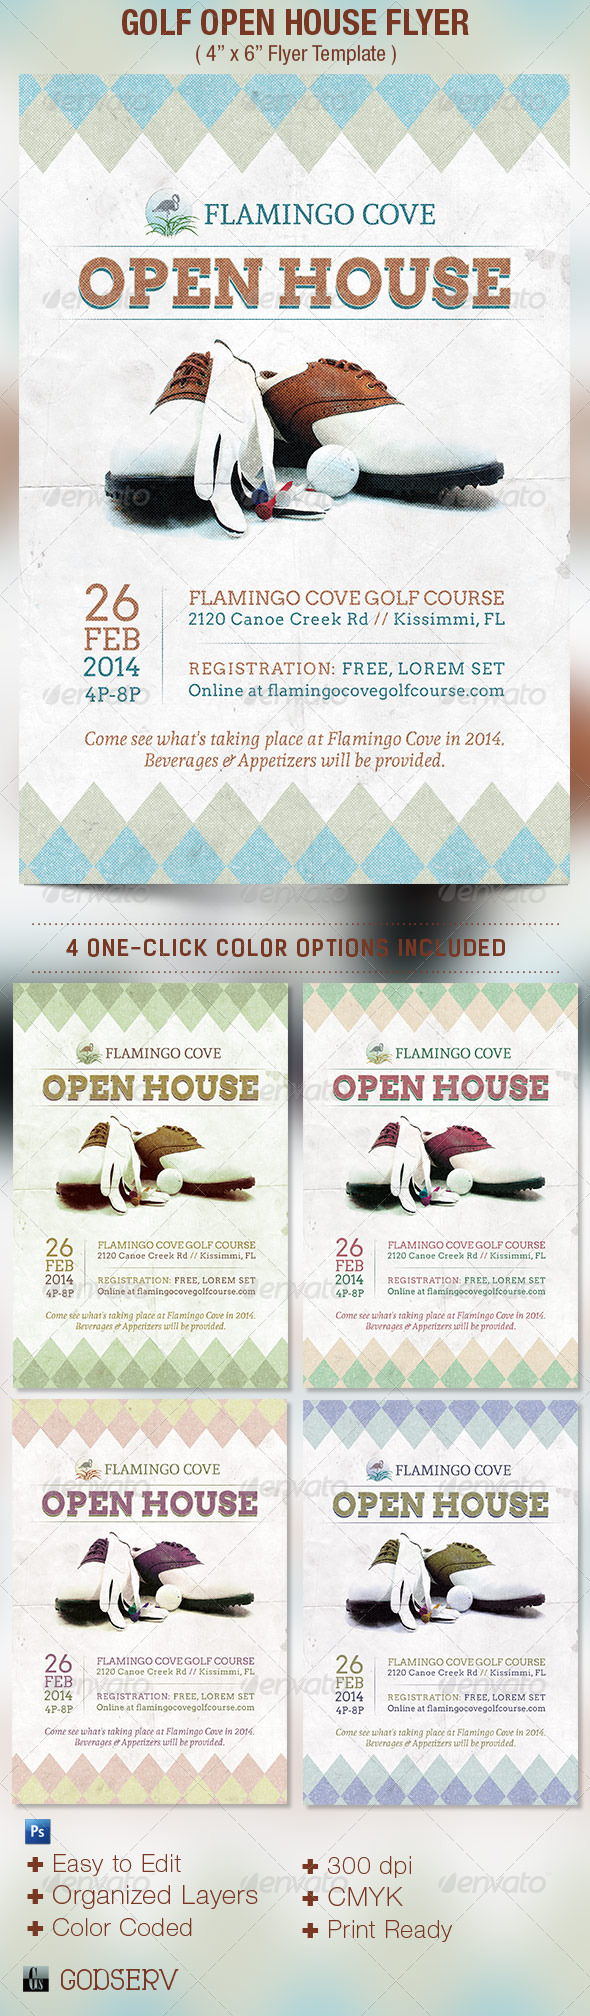 Youth camp flyer poster template graphicmule for Open house brochure template